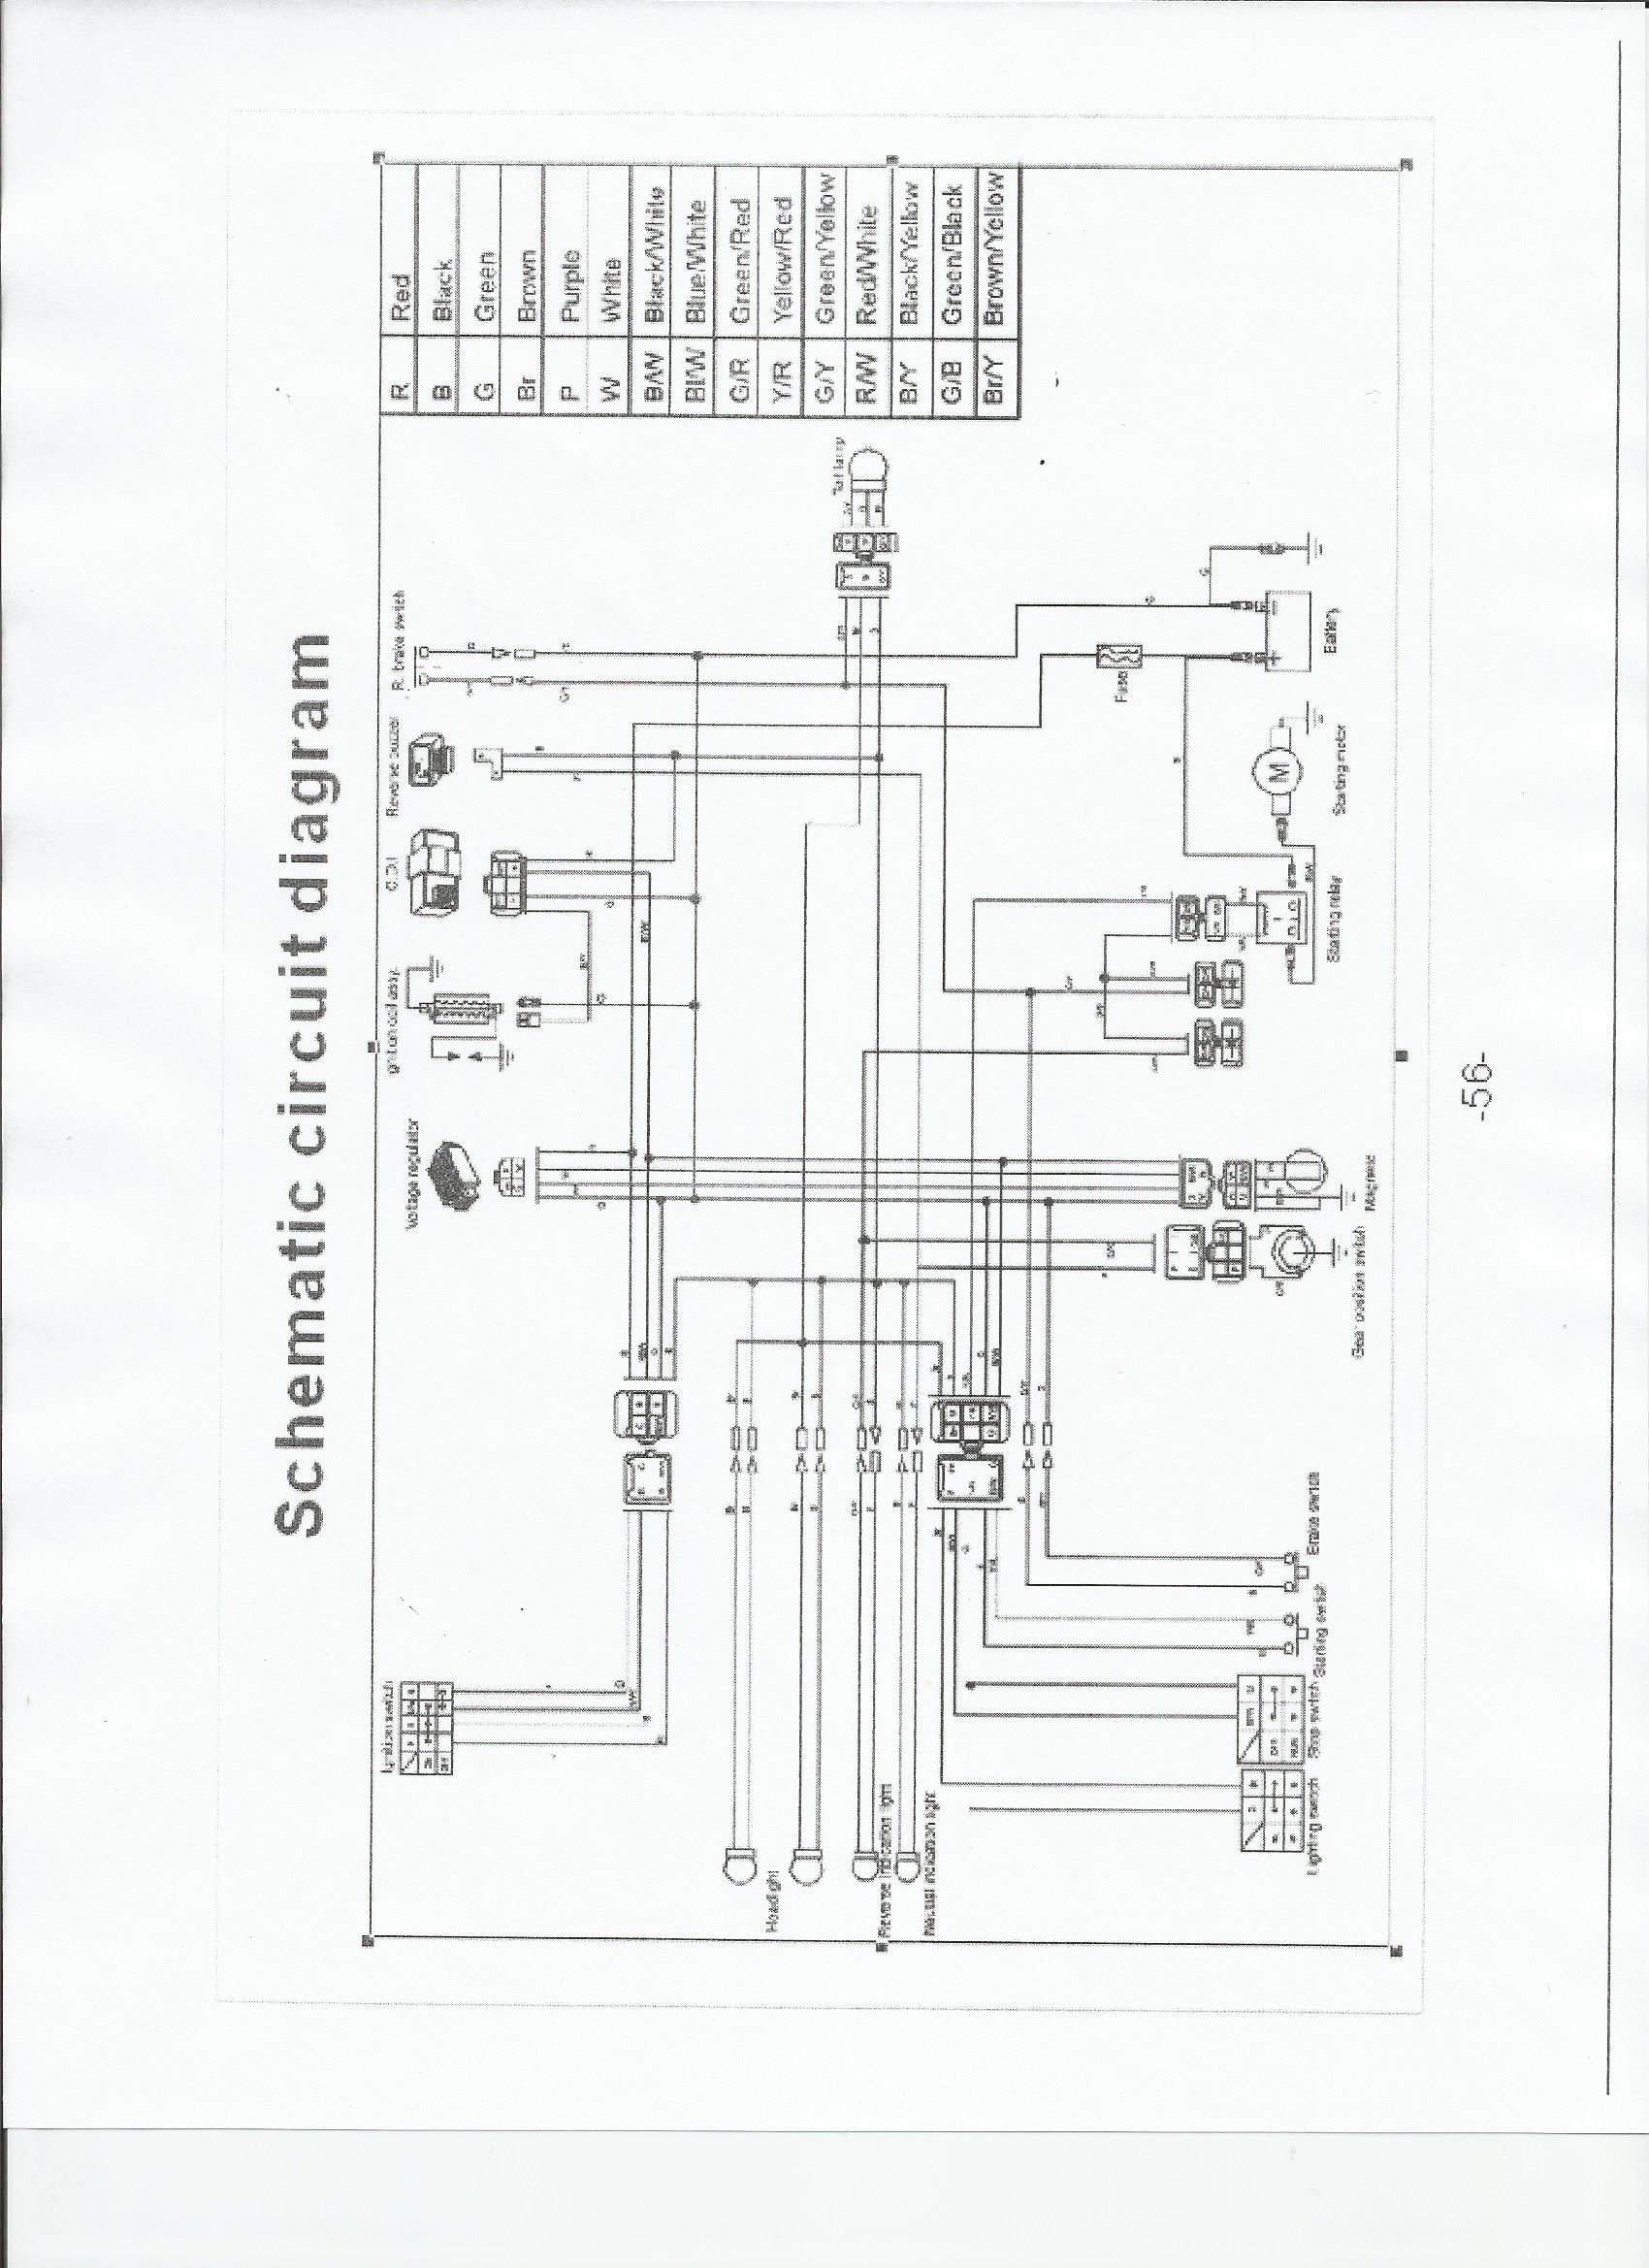 tao tao wiring schematic taotao mini and youth atv wiring schematic familygokarts support honda atv wiring diagram at n-0.co